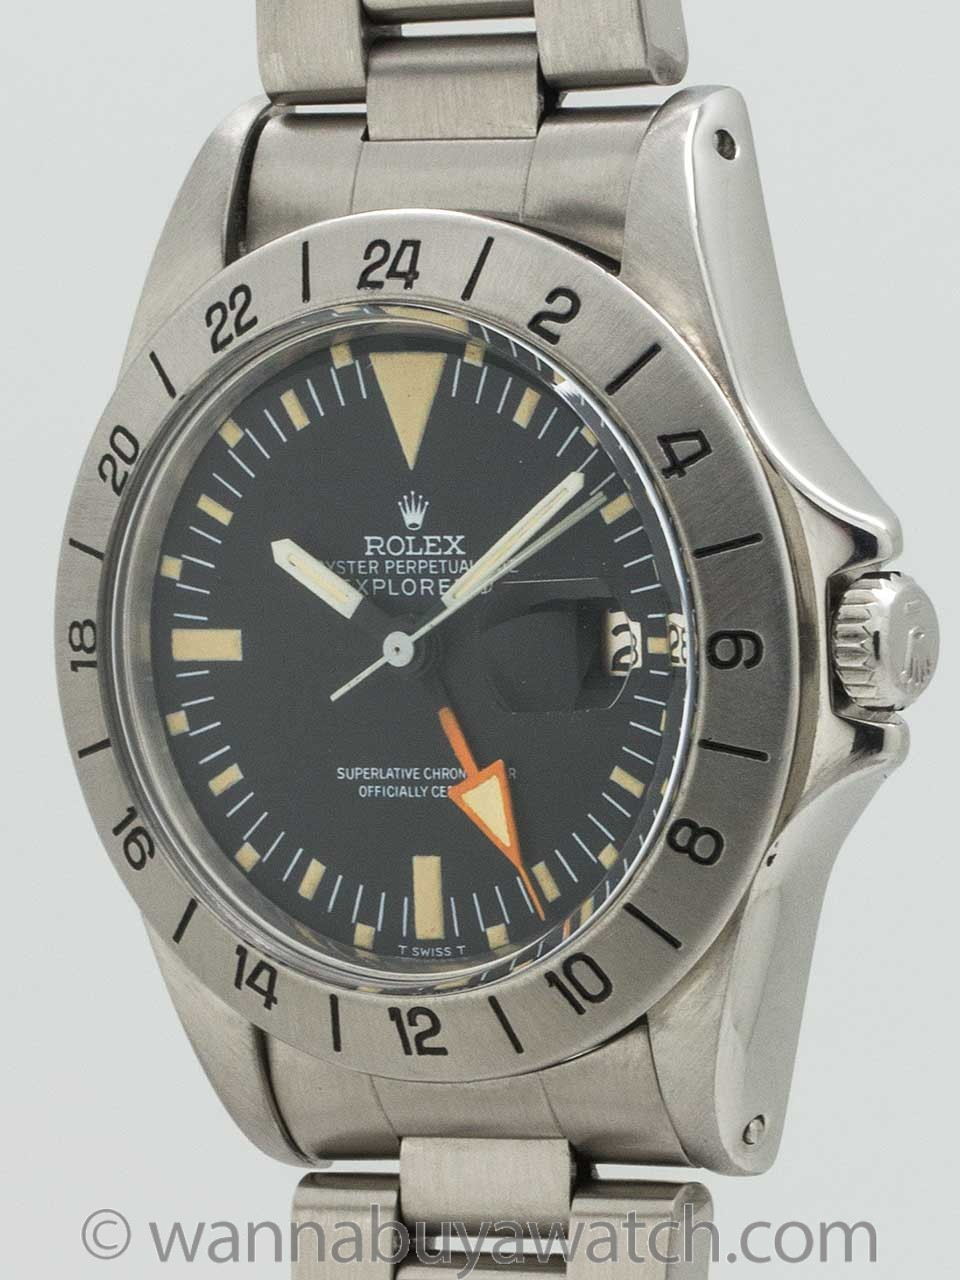 Rolex Explorer II ref 1655 Straight Second Hand circa 1971